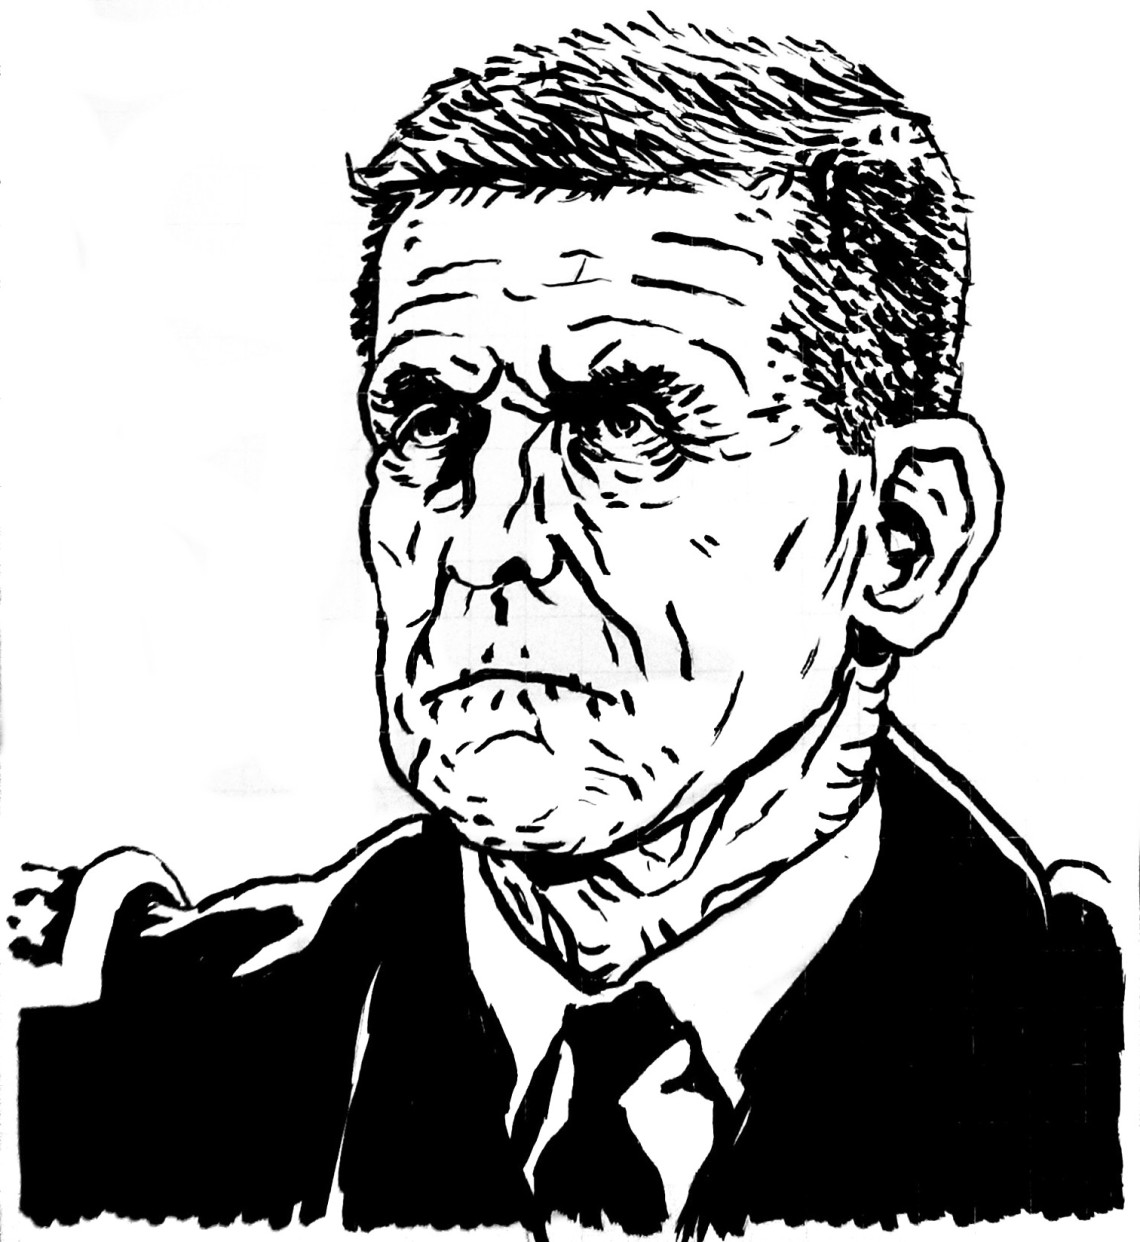 Michael Flynn illustration